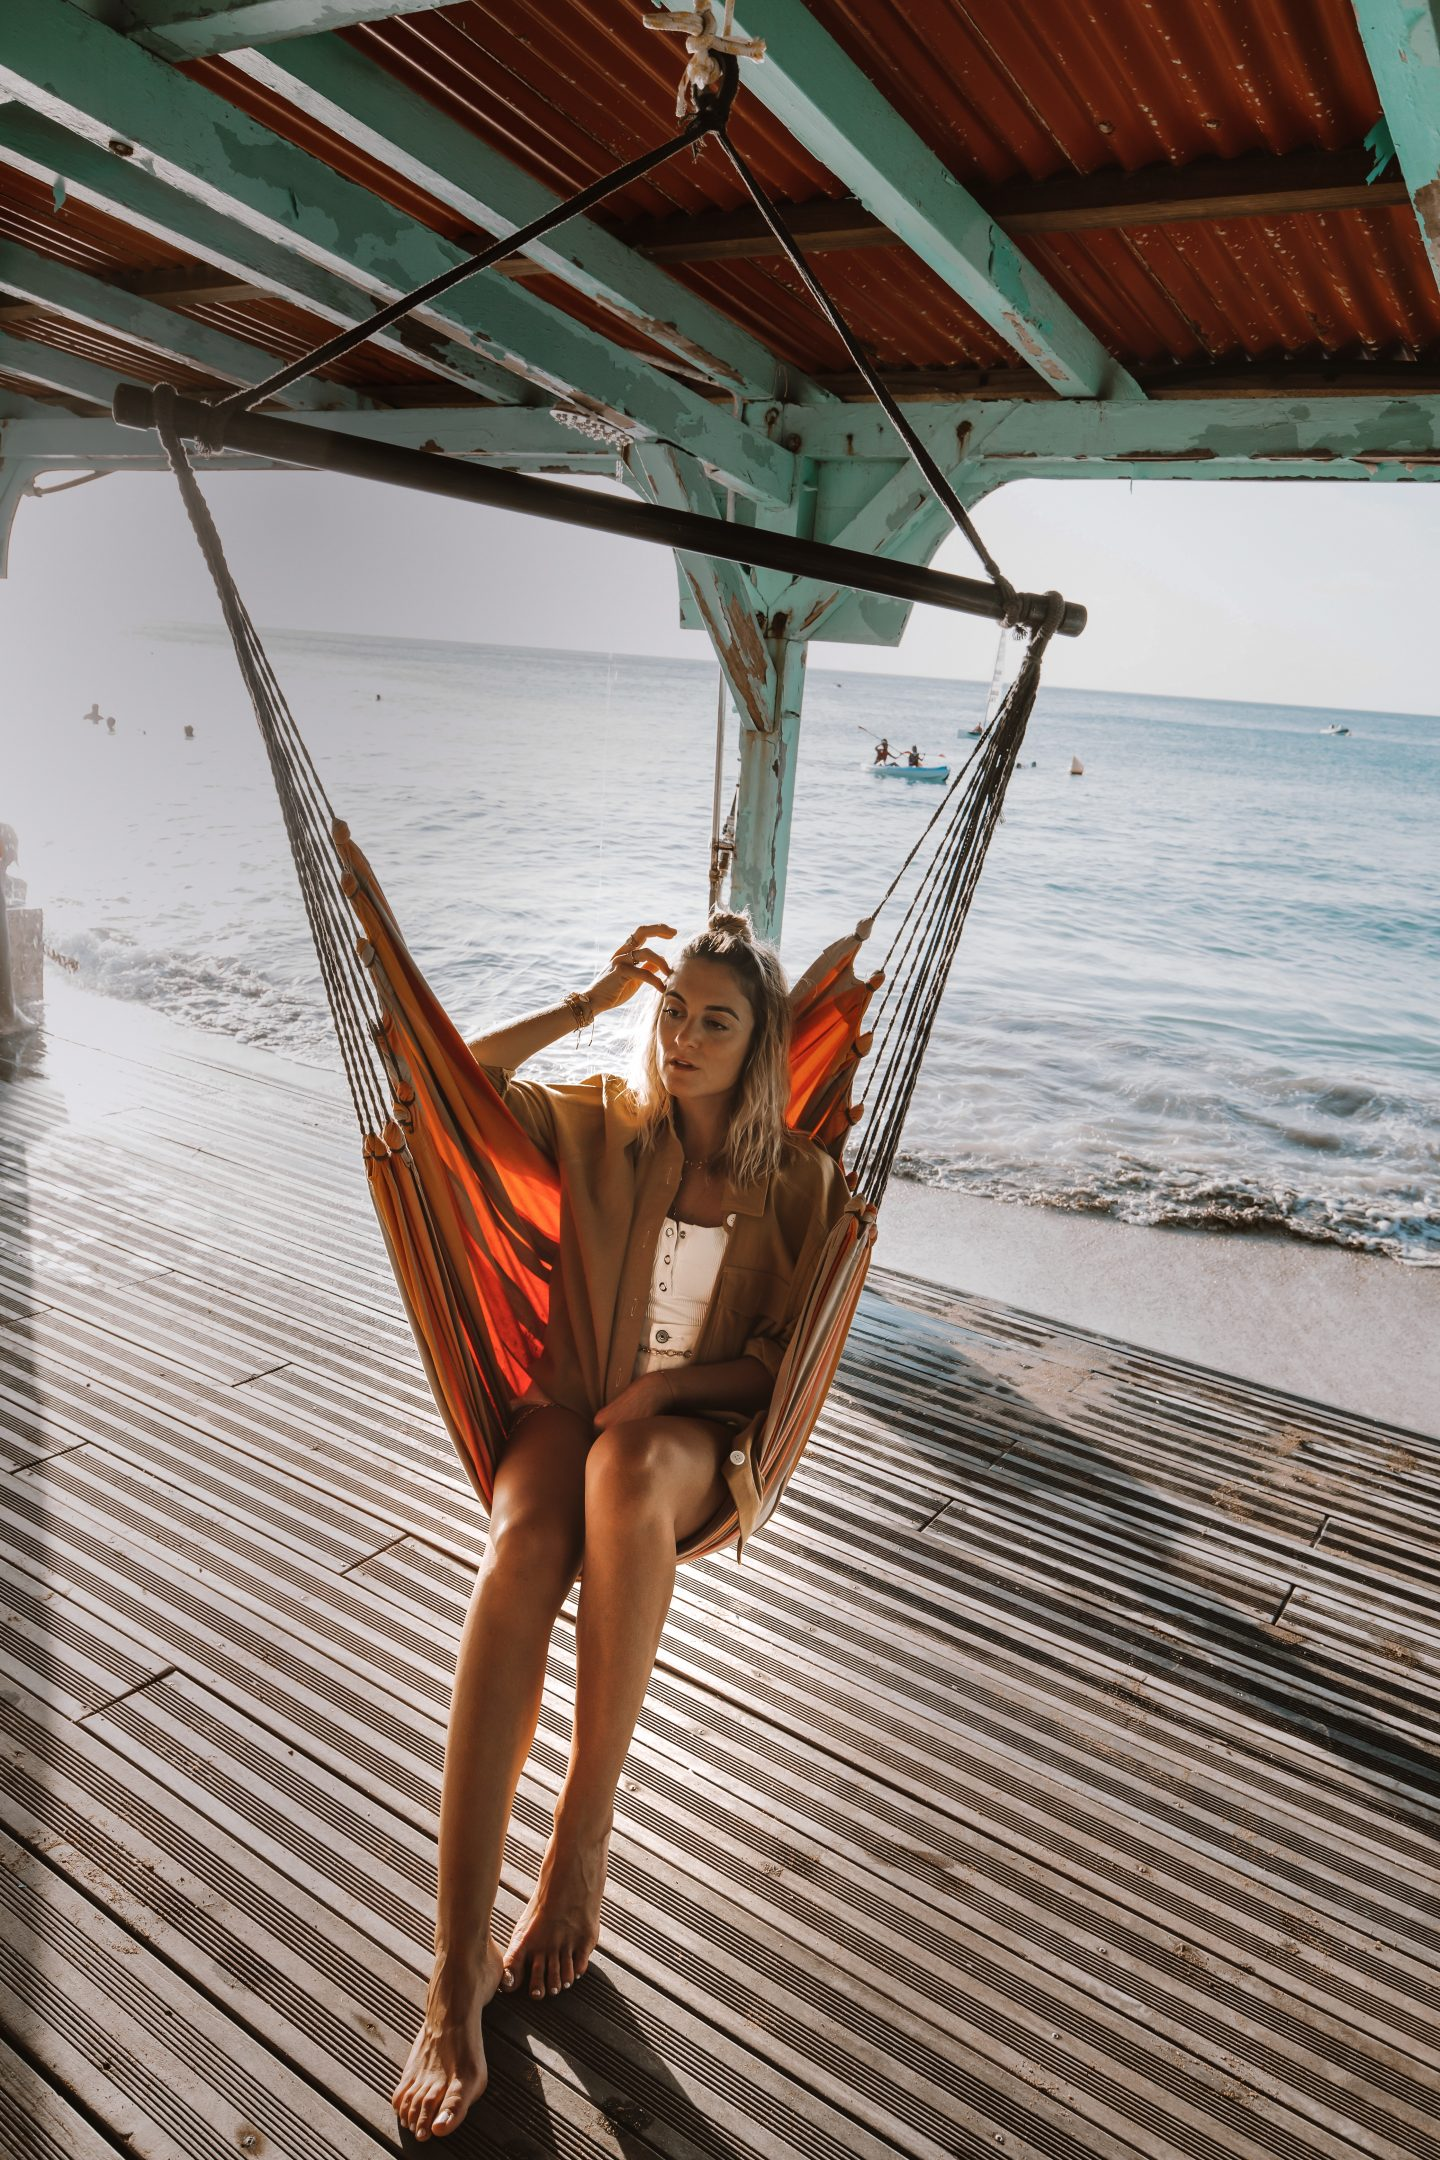 Hotel Guadeloupe - Blondie Baby blog voyages